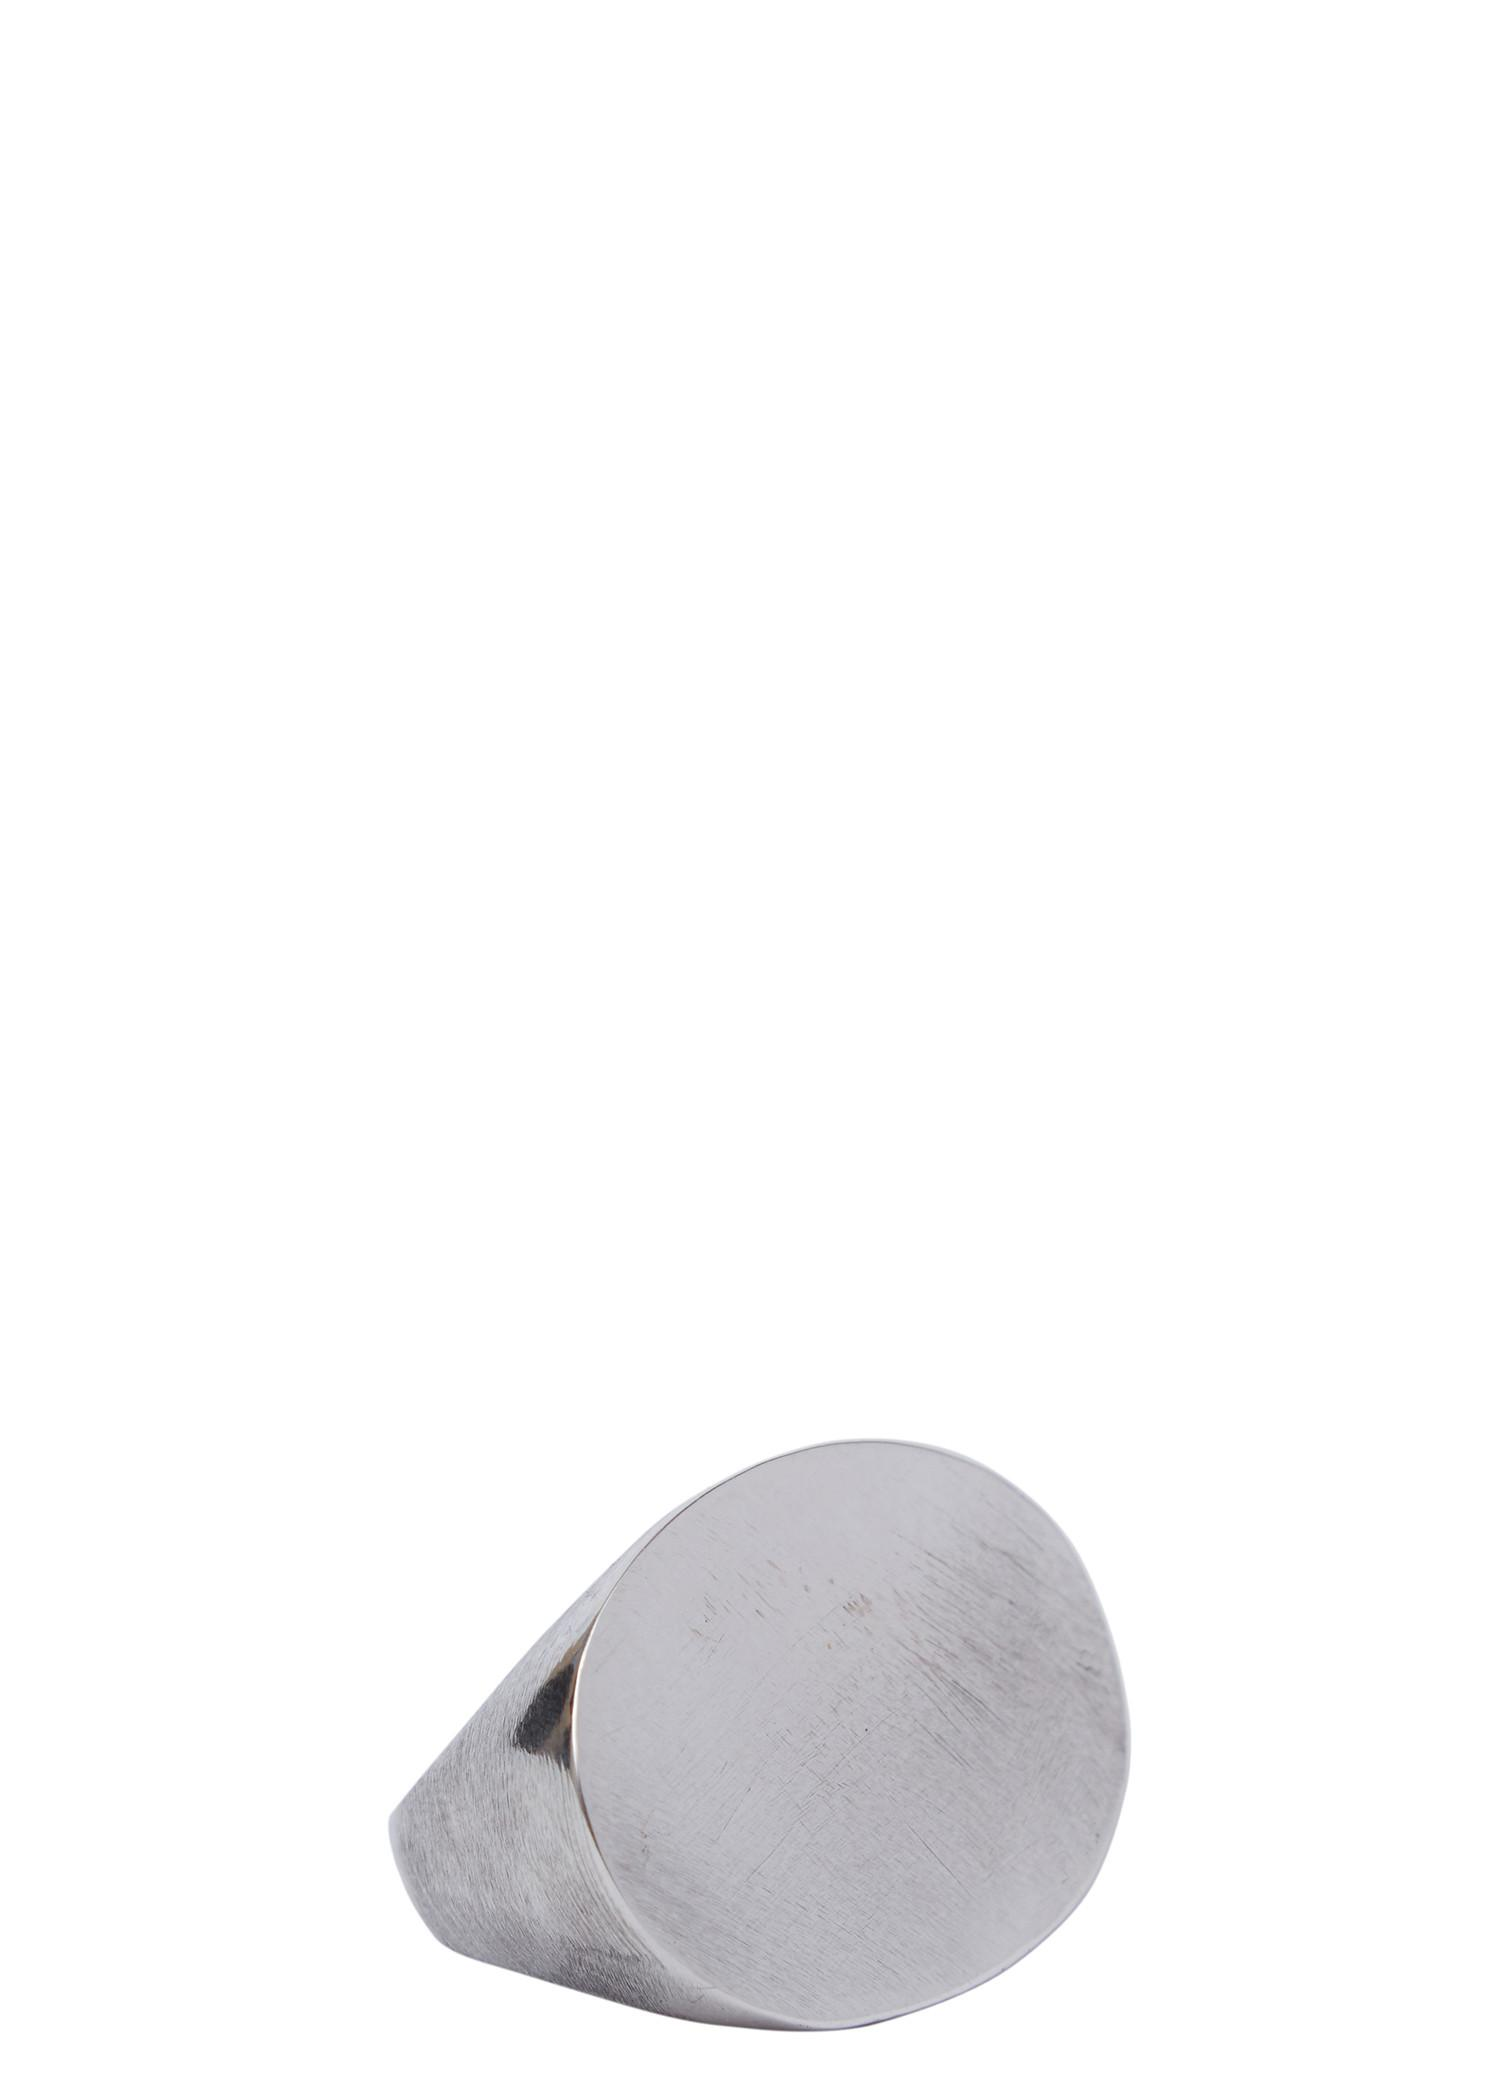 Ann Demeulemeester Silver Flat Surface Ring In Polished Silver